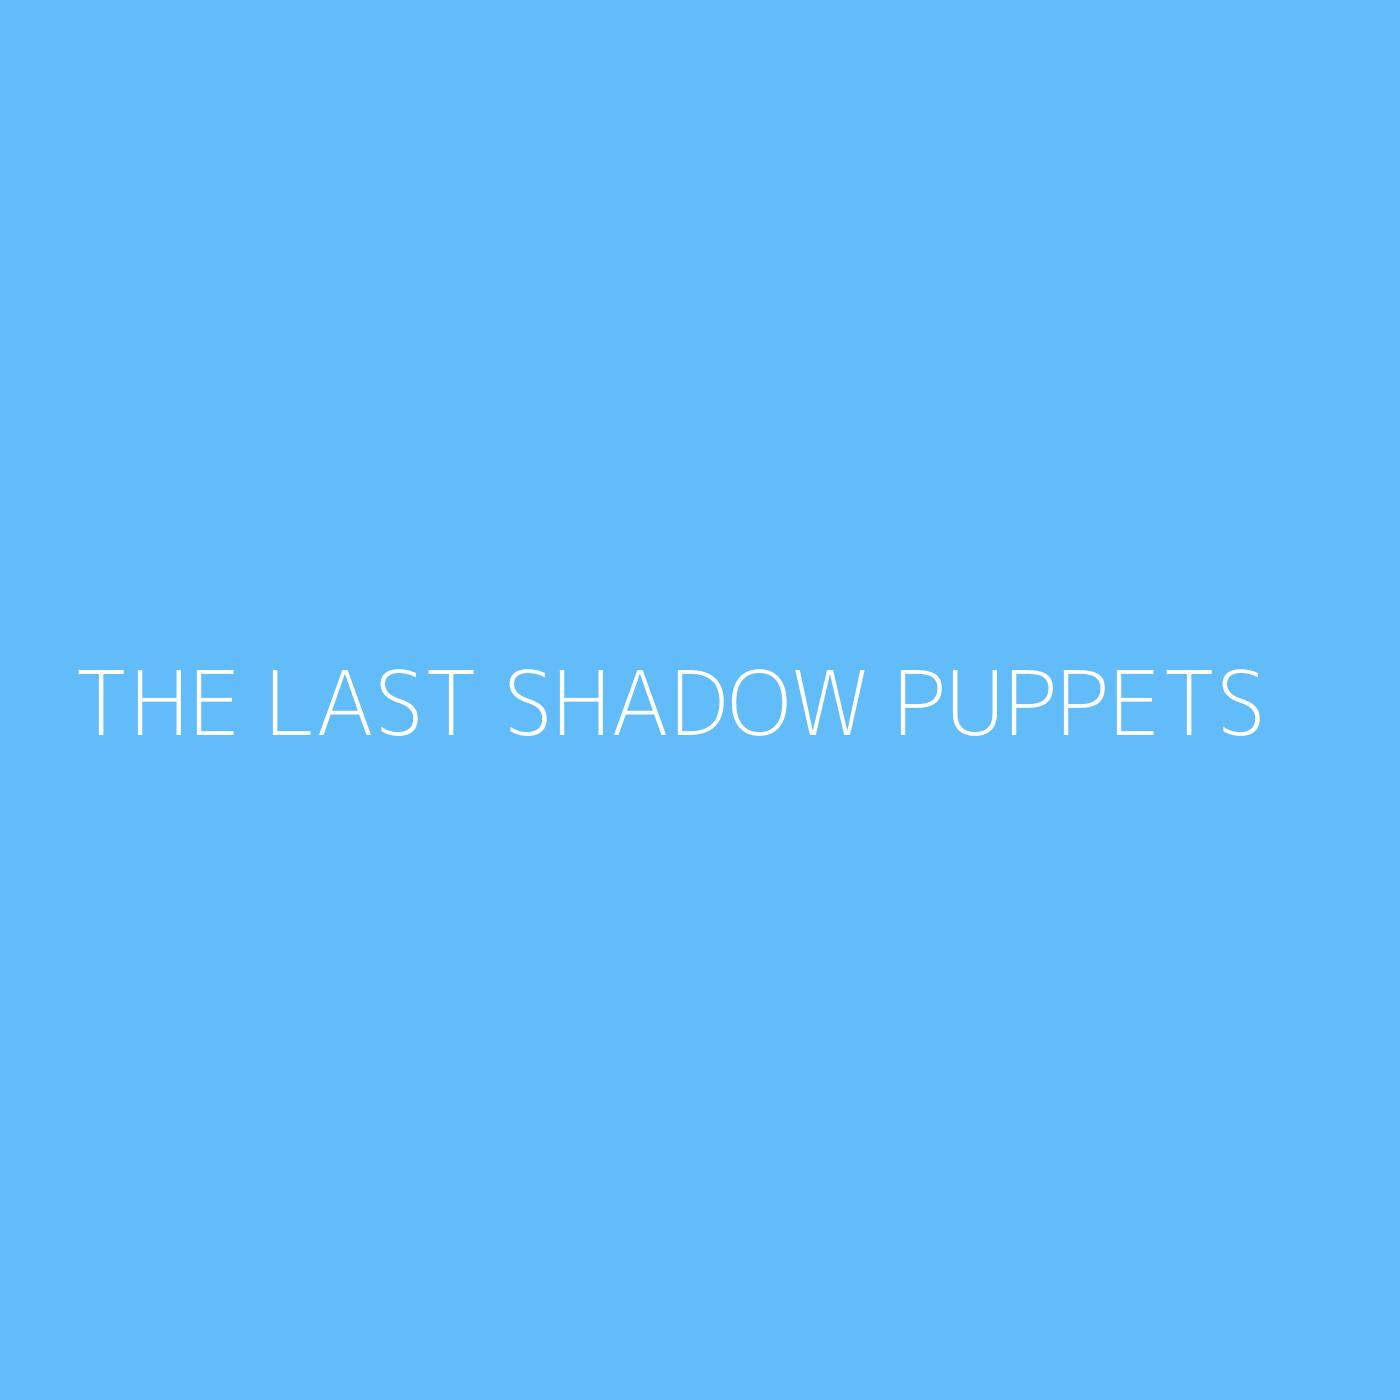 The Last Shadow Puppets Playlist Artwork